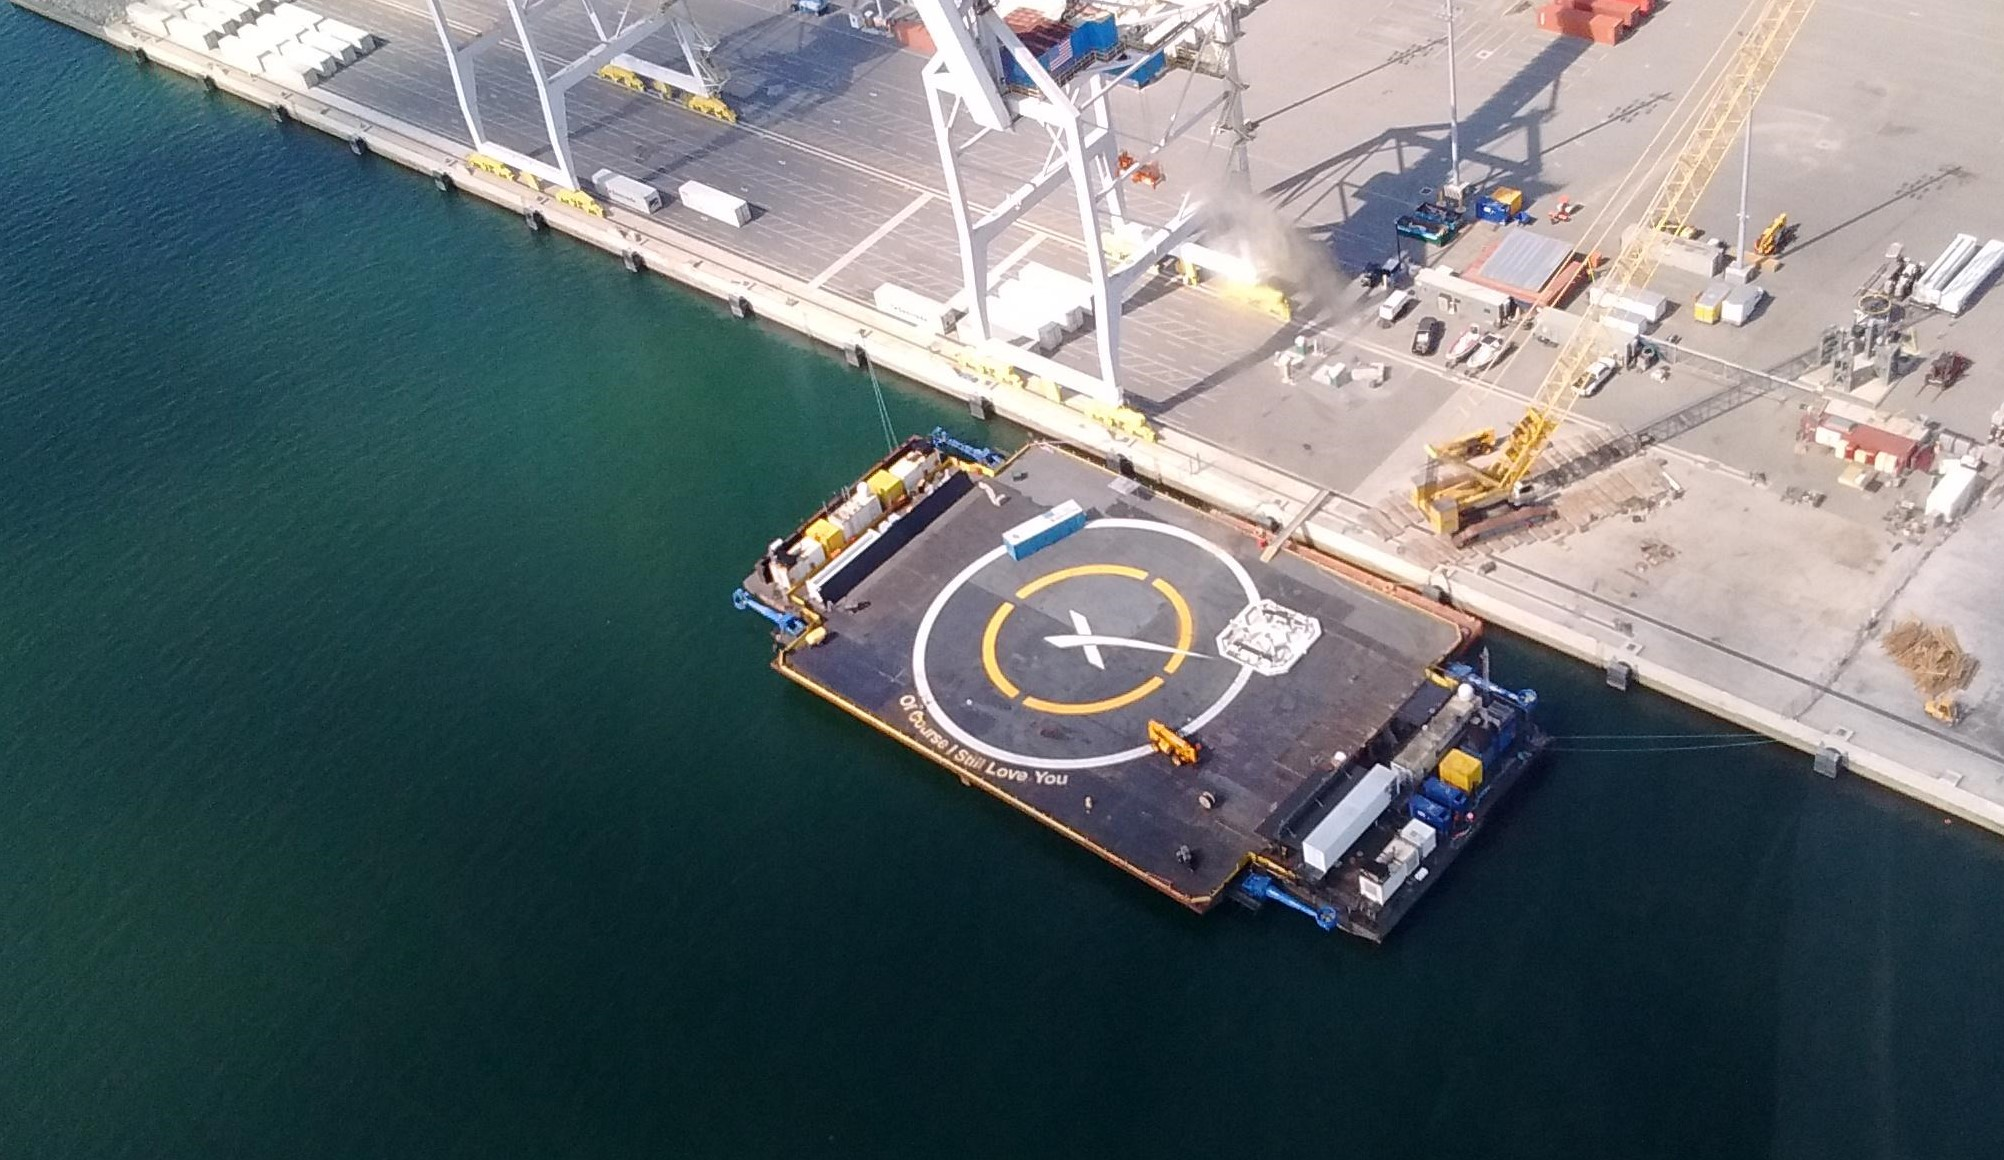 Spacex S Drone Ship Fleet Spied Prepping For Future Rocket